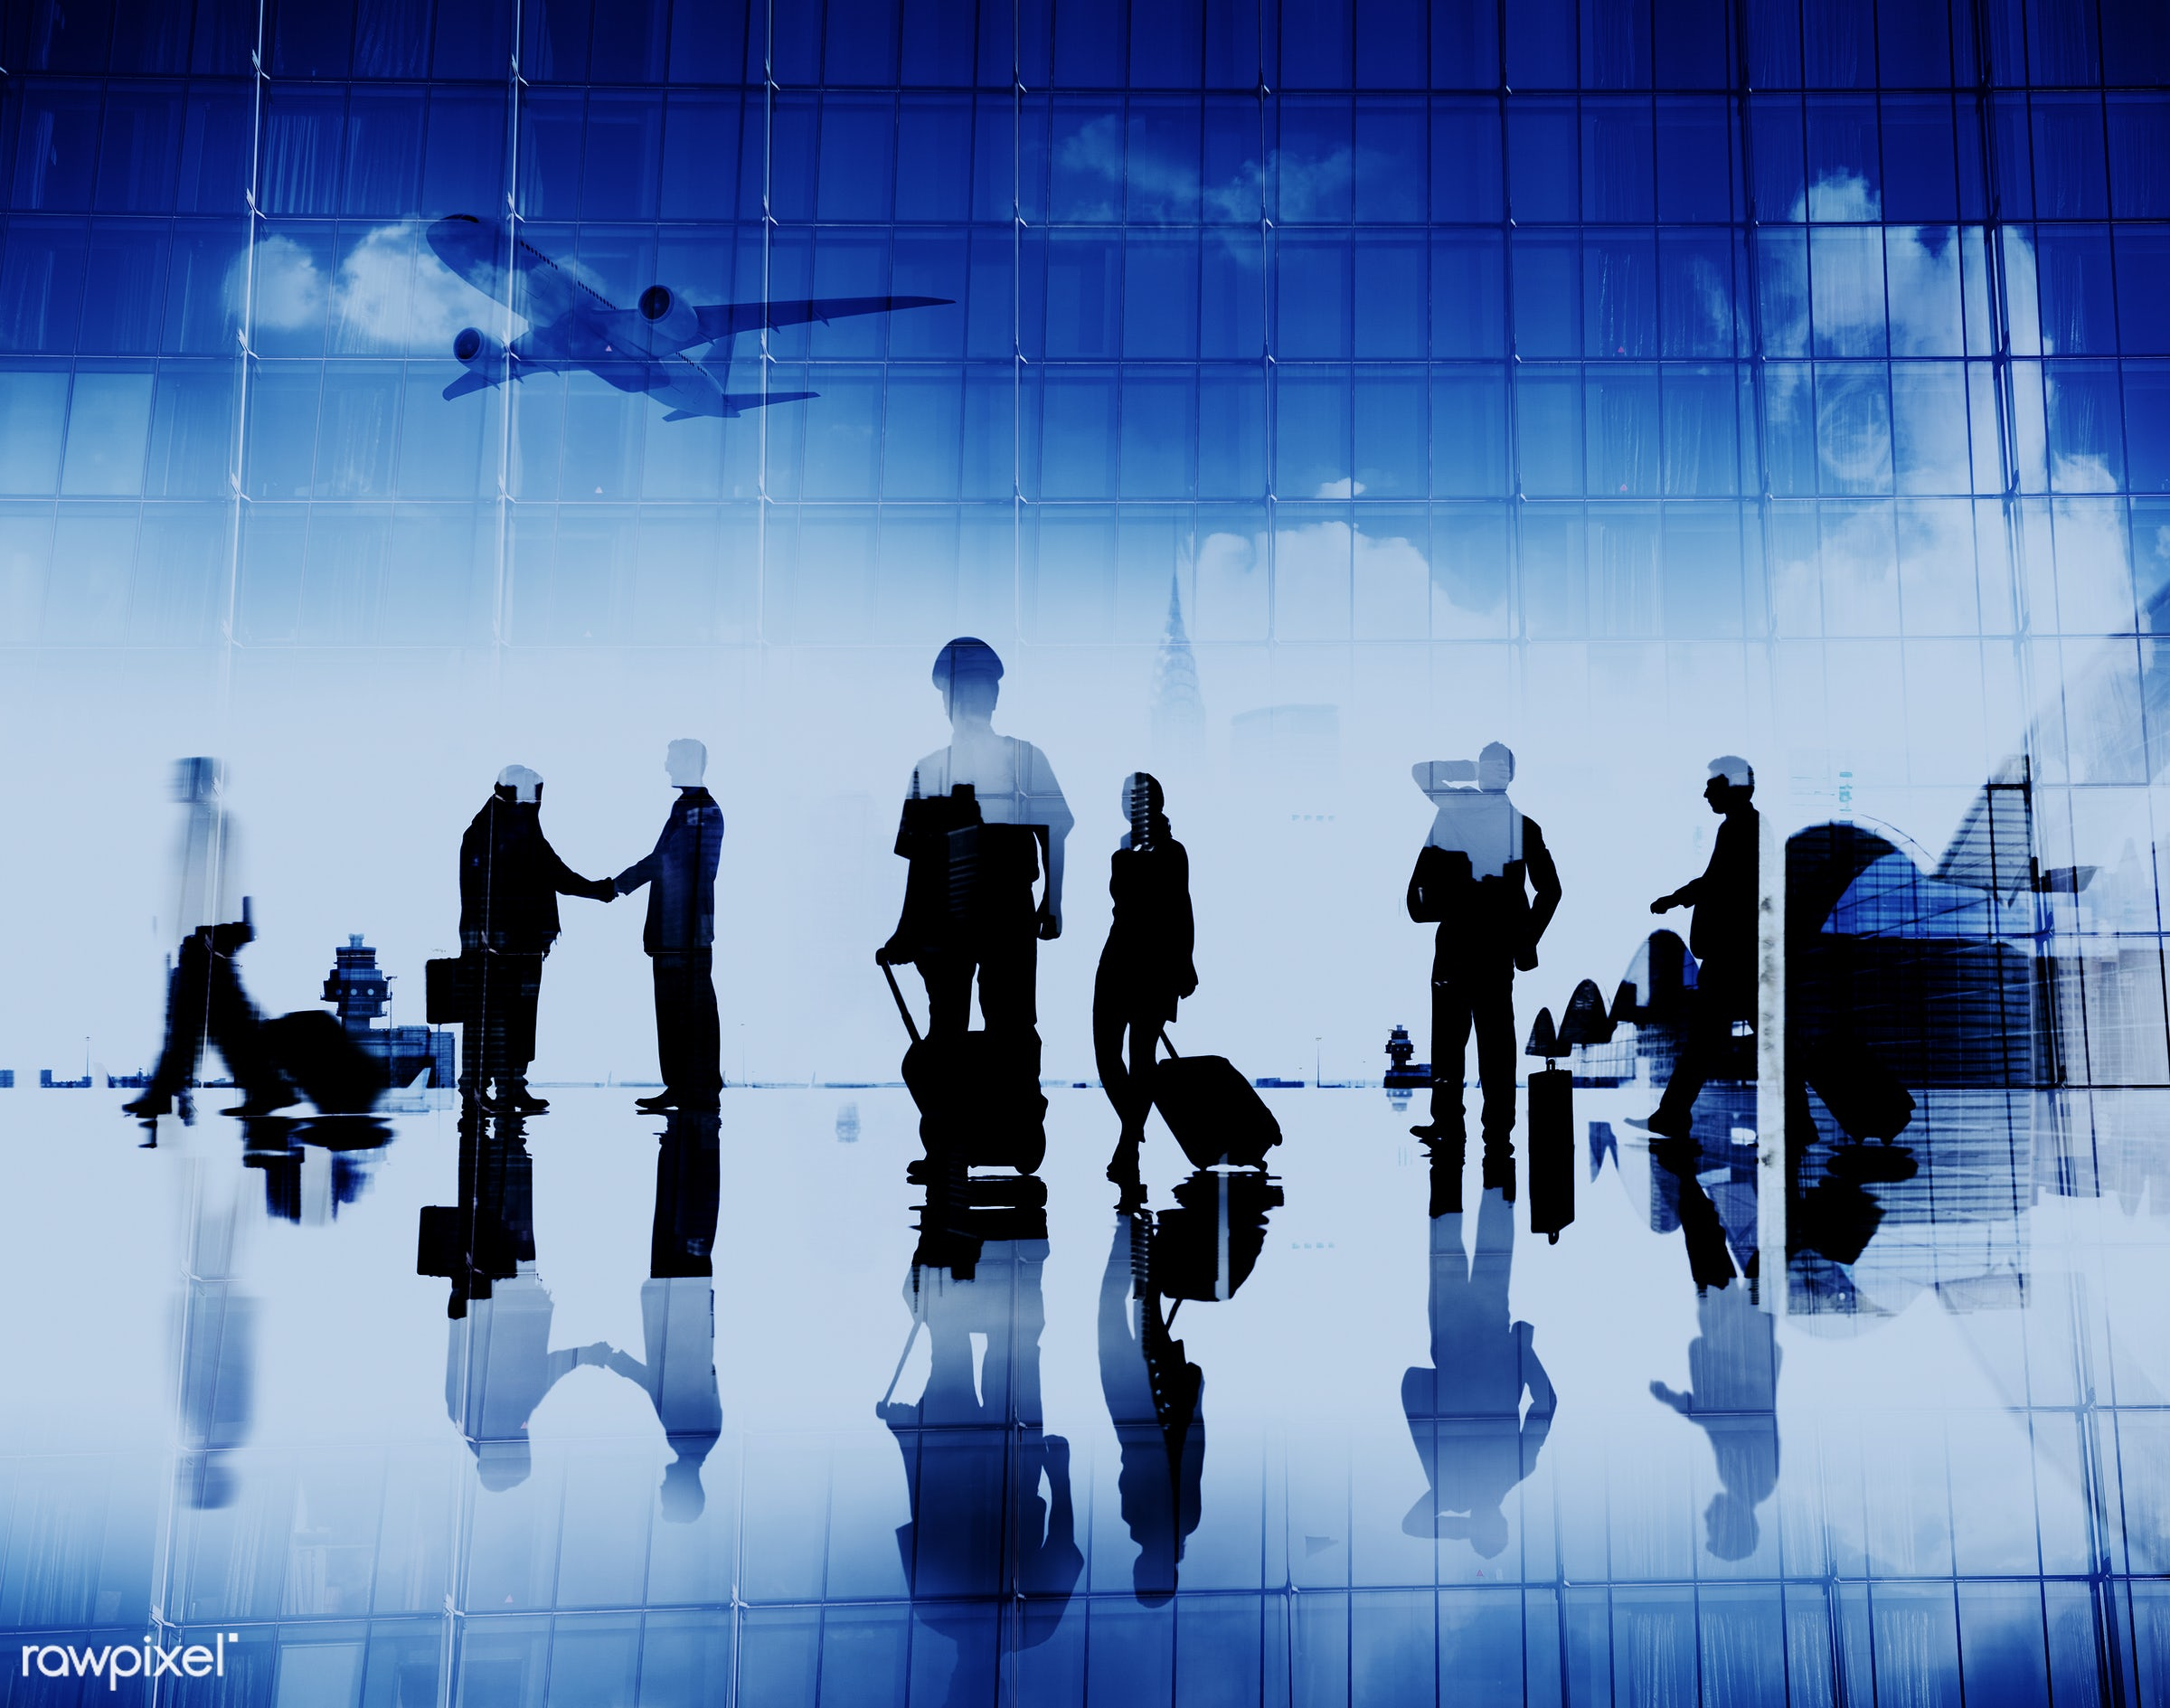 abstract, airplane, airport, arrival, back lit, building, business, business people, businessmen, businesswomen, captain,...